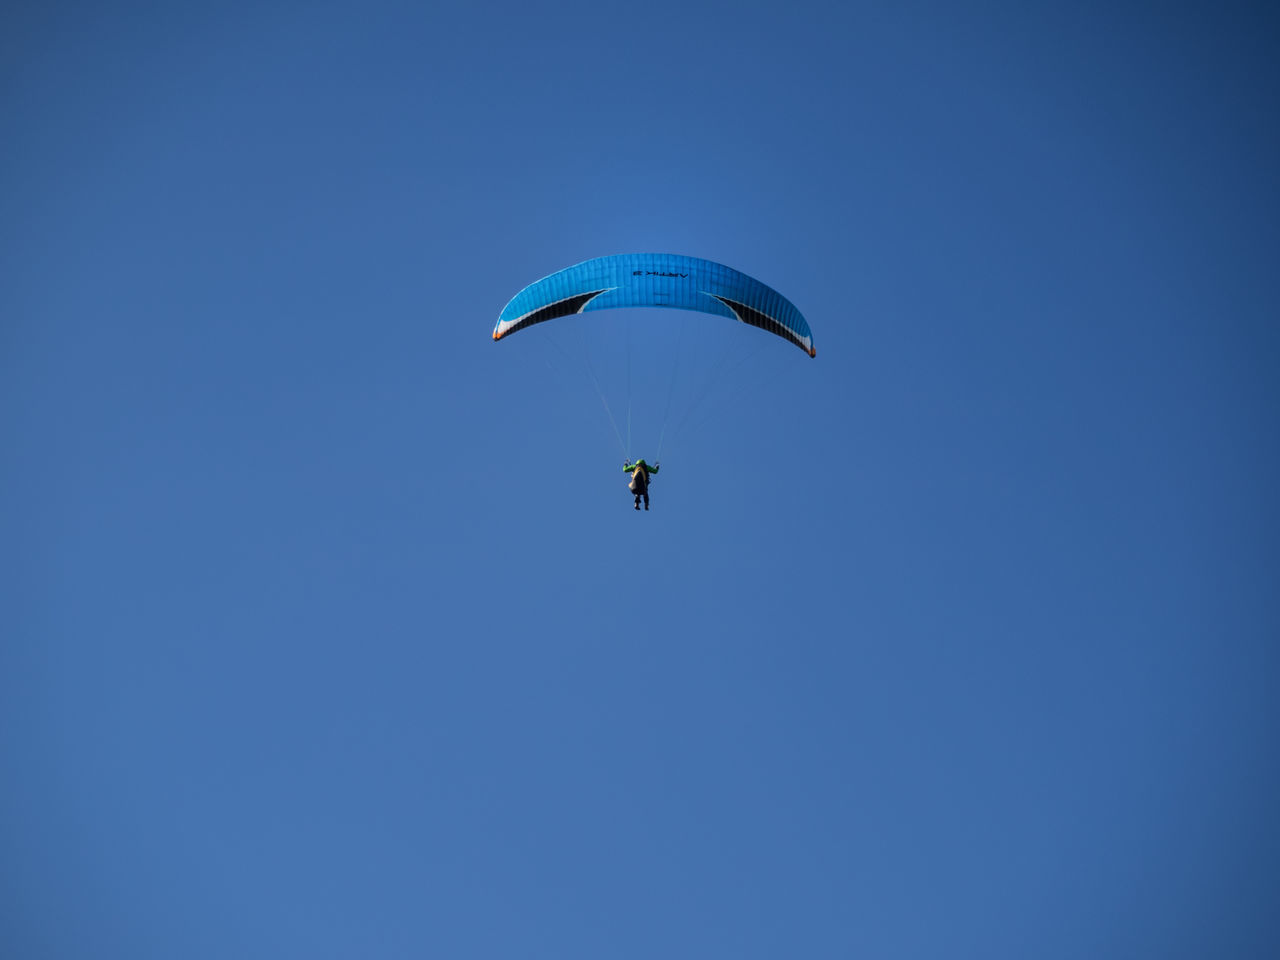 Into the blue. Adventure Blue Blue Sky Carefree Clear Sky Day Distant Exhilaration Extreme Sports Flying Gliding Leisure Activity Low Angle View Mid-air Nature Parachute Paragliding Scenics Sky Skydiving Tranquility Transportation